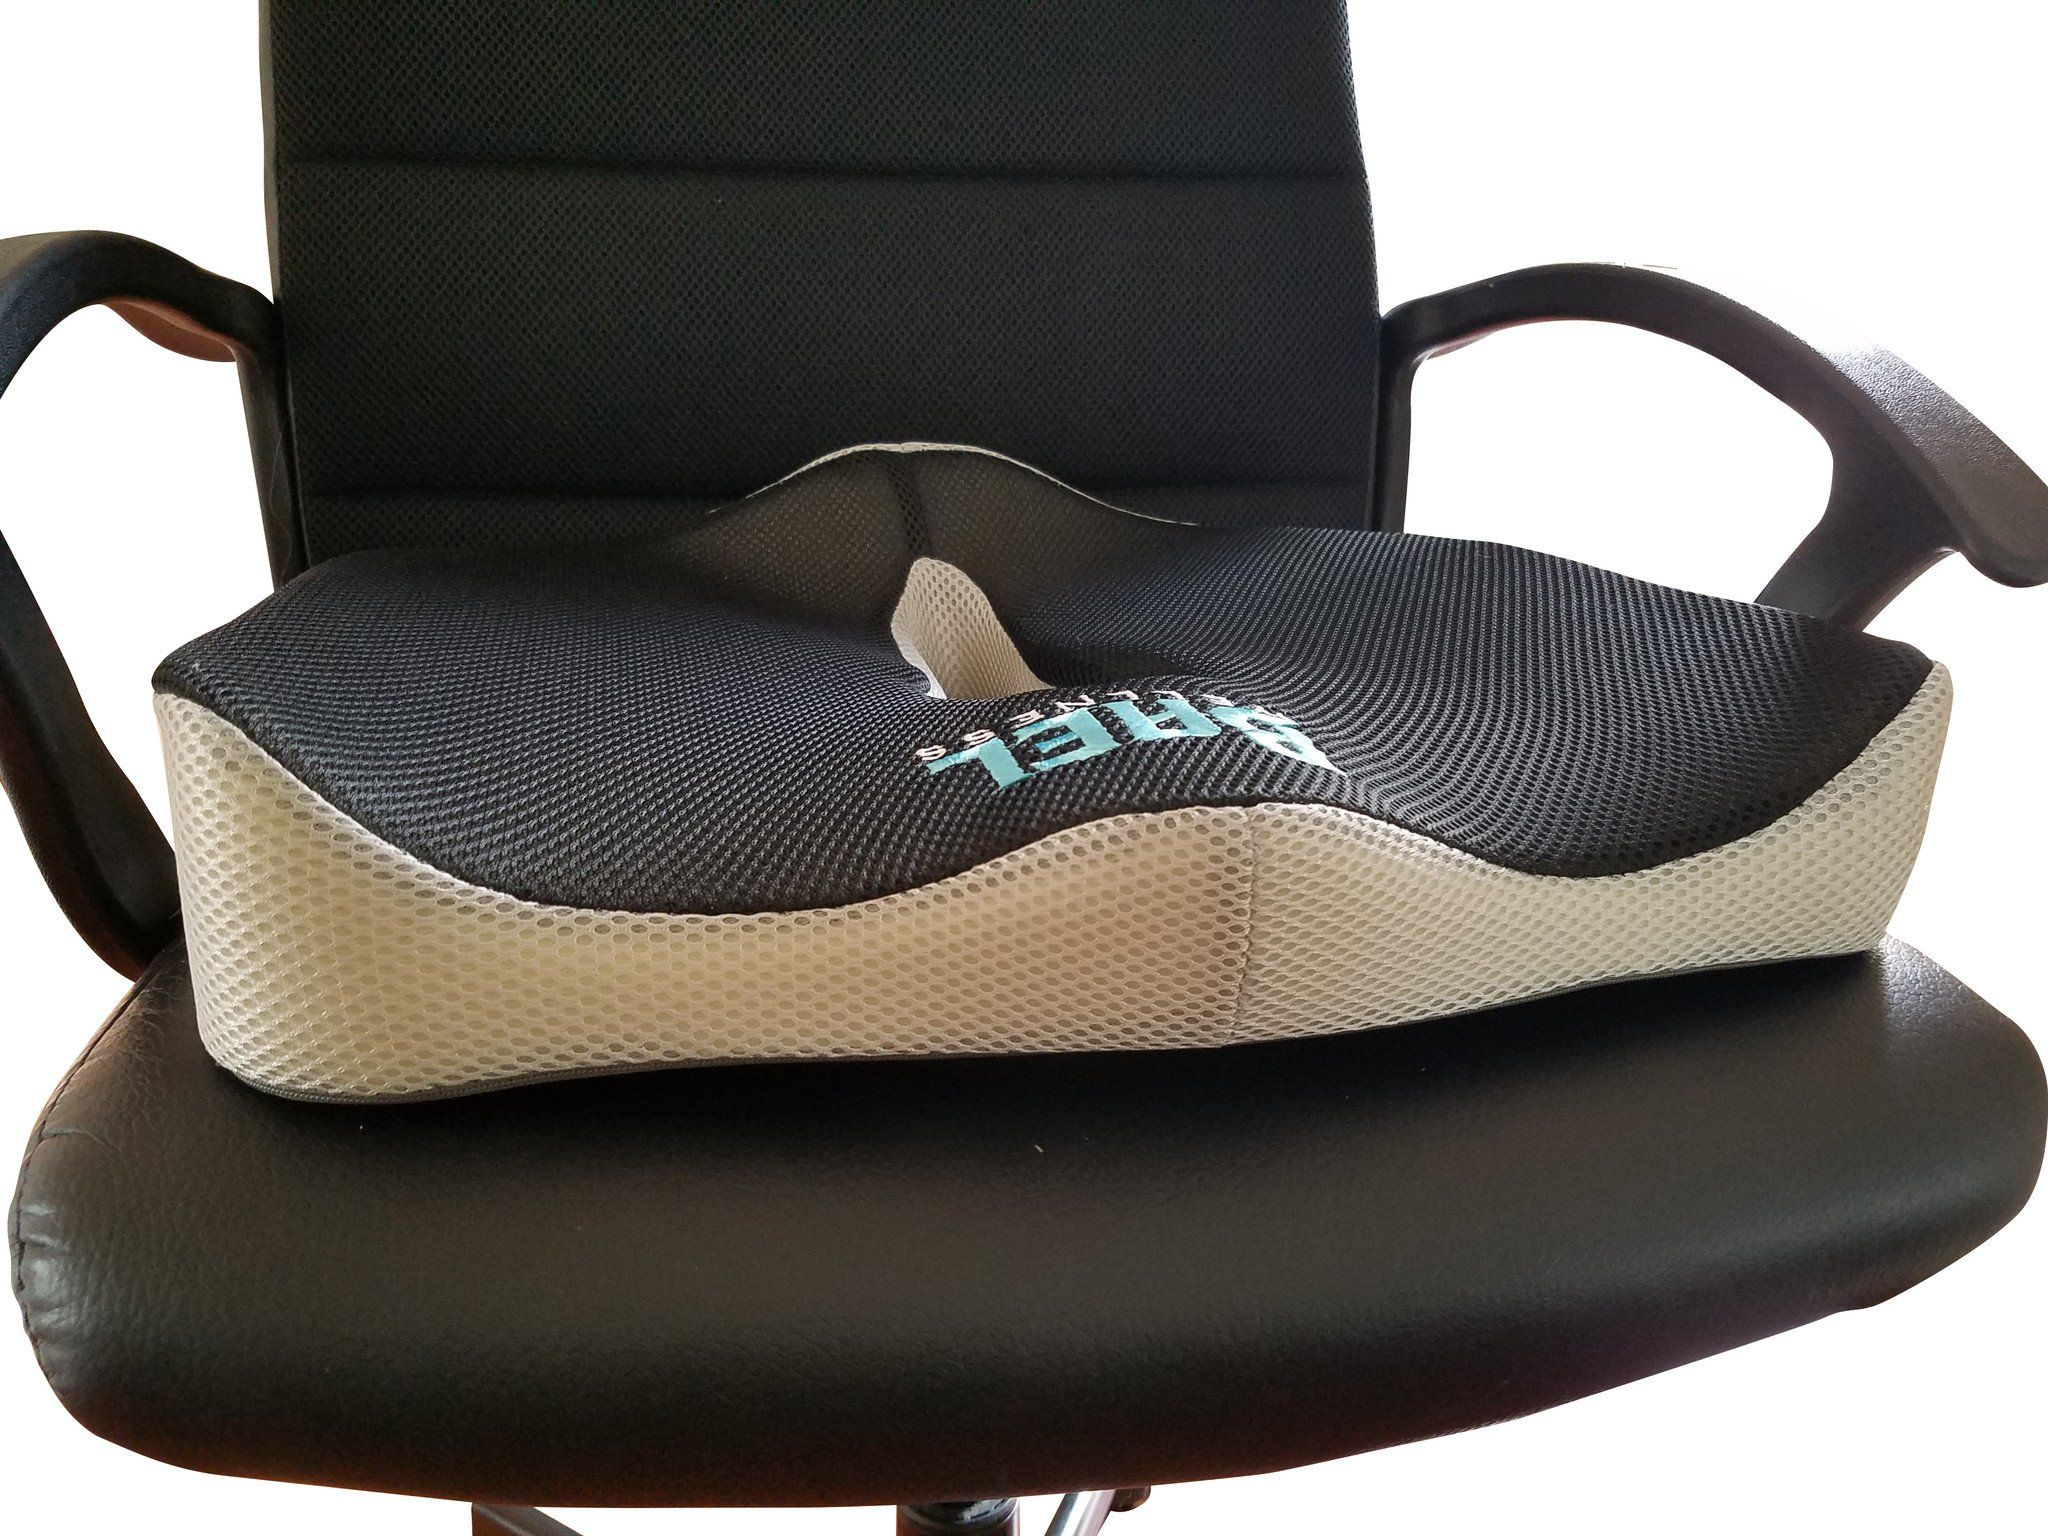 Coccyx & Tailbone Support Seat Cushion with Lumbar Support